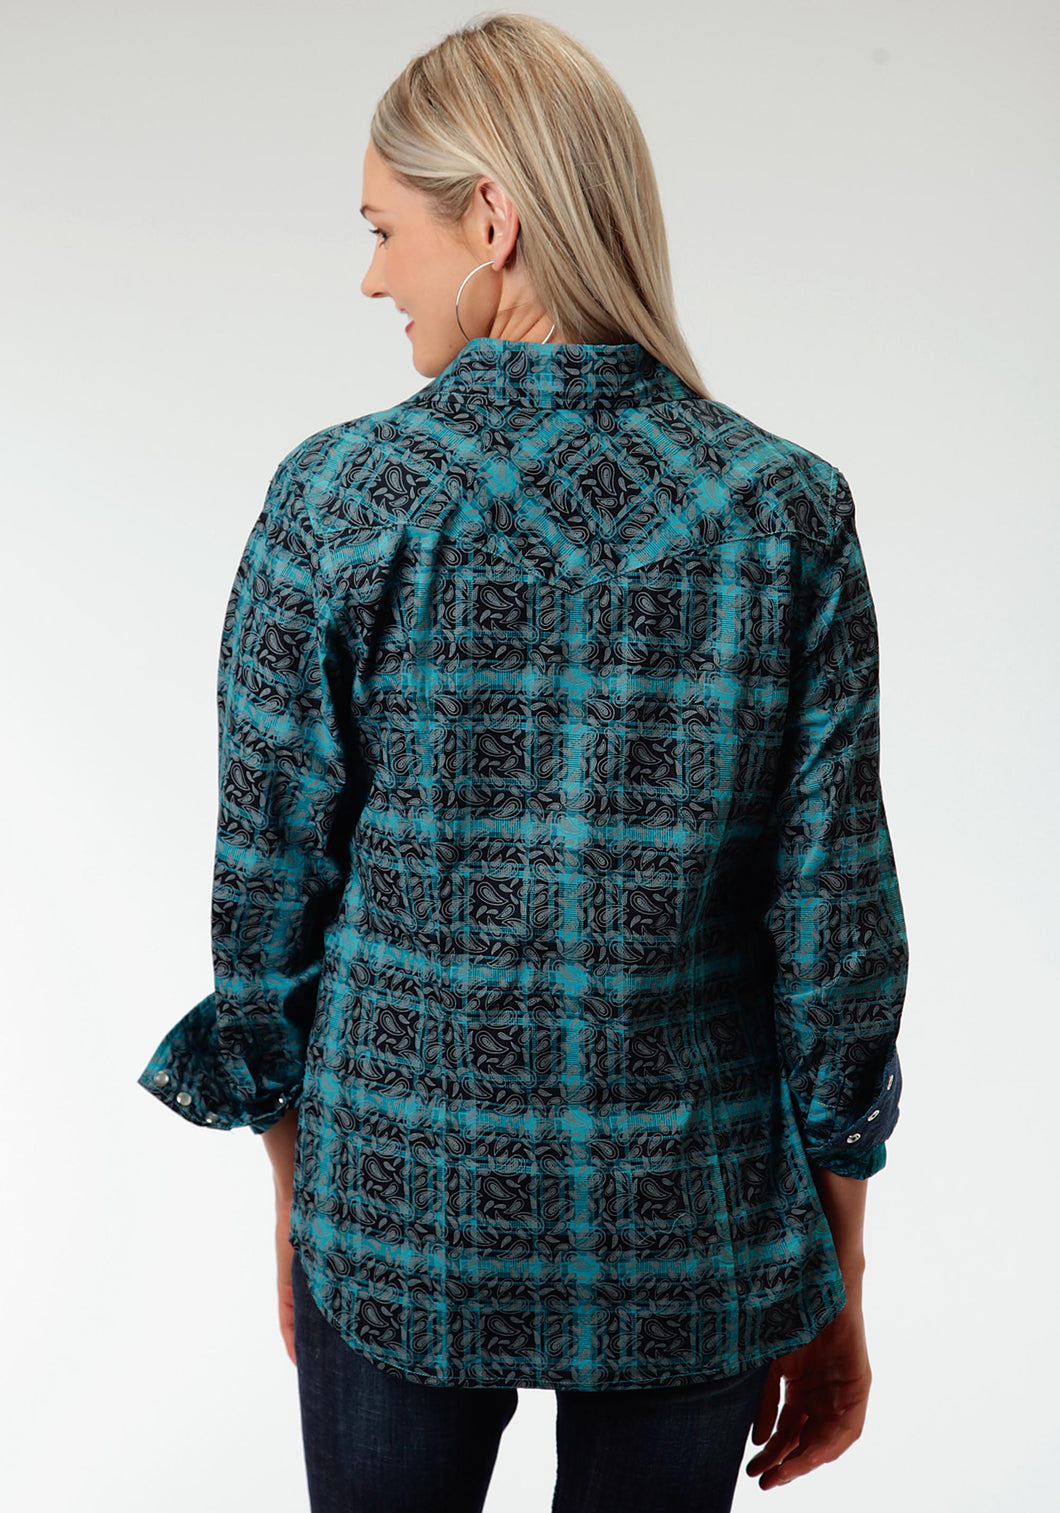 Performance Collection Westm Womens Long Sleeve Shirt 0621 Paisley Printed Plaid